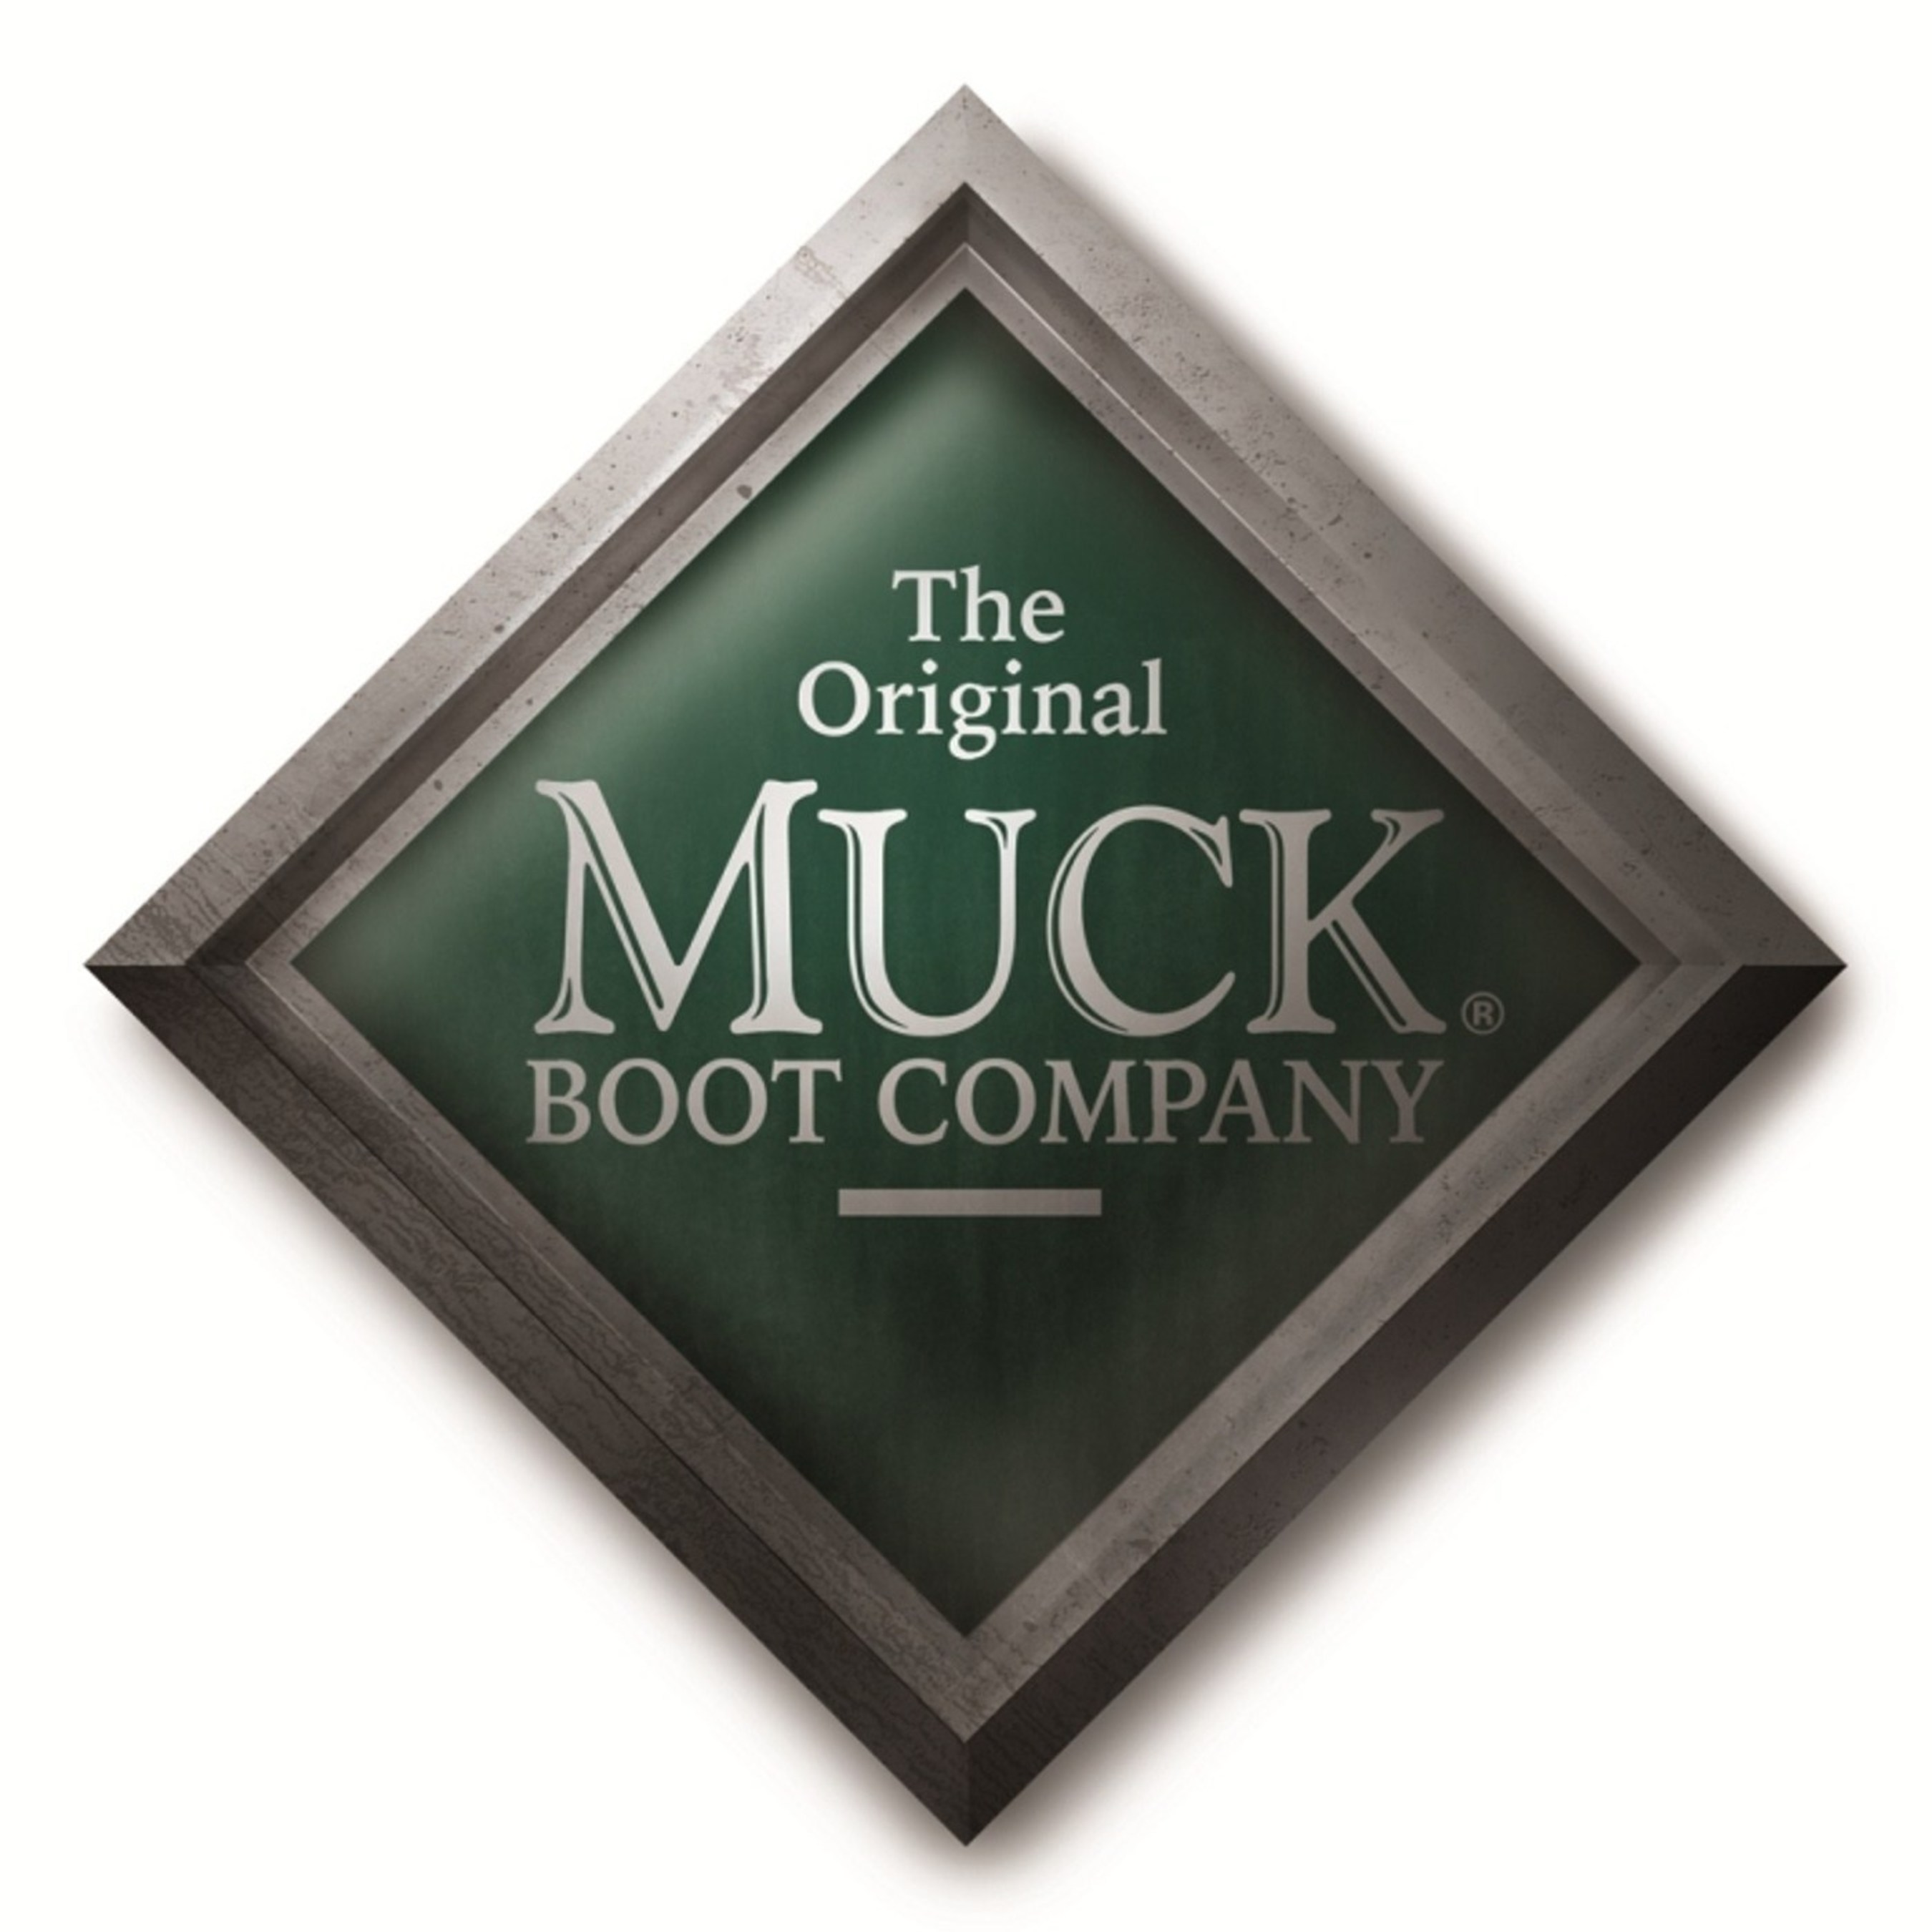 Muck Boots Launches Fall 2014 Footwear Collection Featuring Modern ...